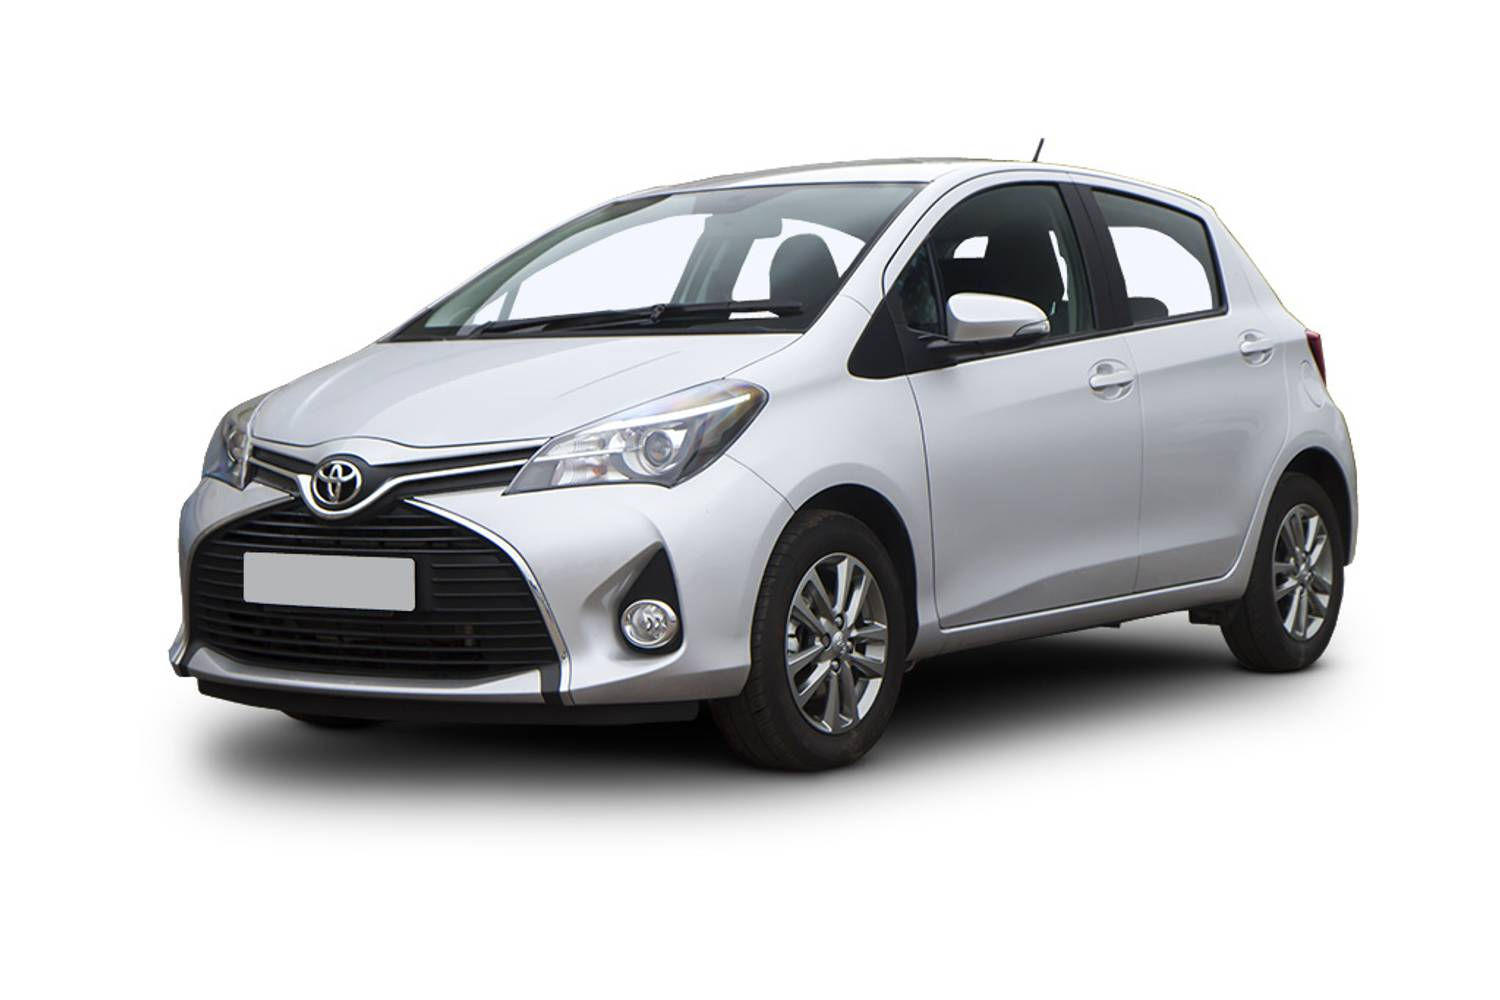 new toyota yaris hatchback 1 5 hybrid icon 5 door cvt. Black Bedroom Furniture Sets. Home Design Ideas